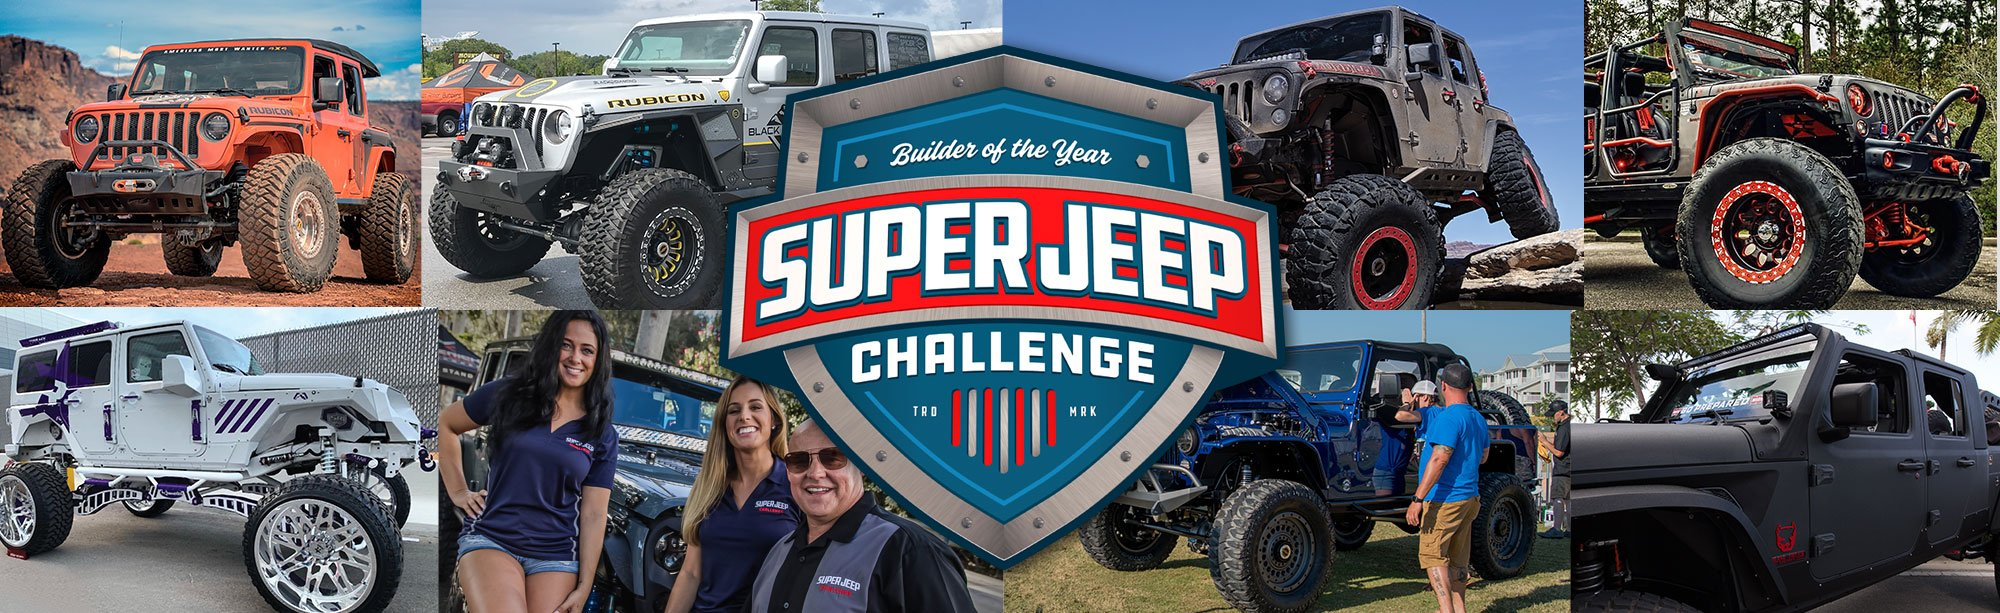 Super Jeep Challenge - Builder of the Year